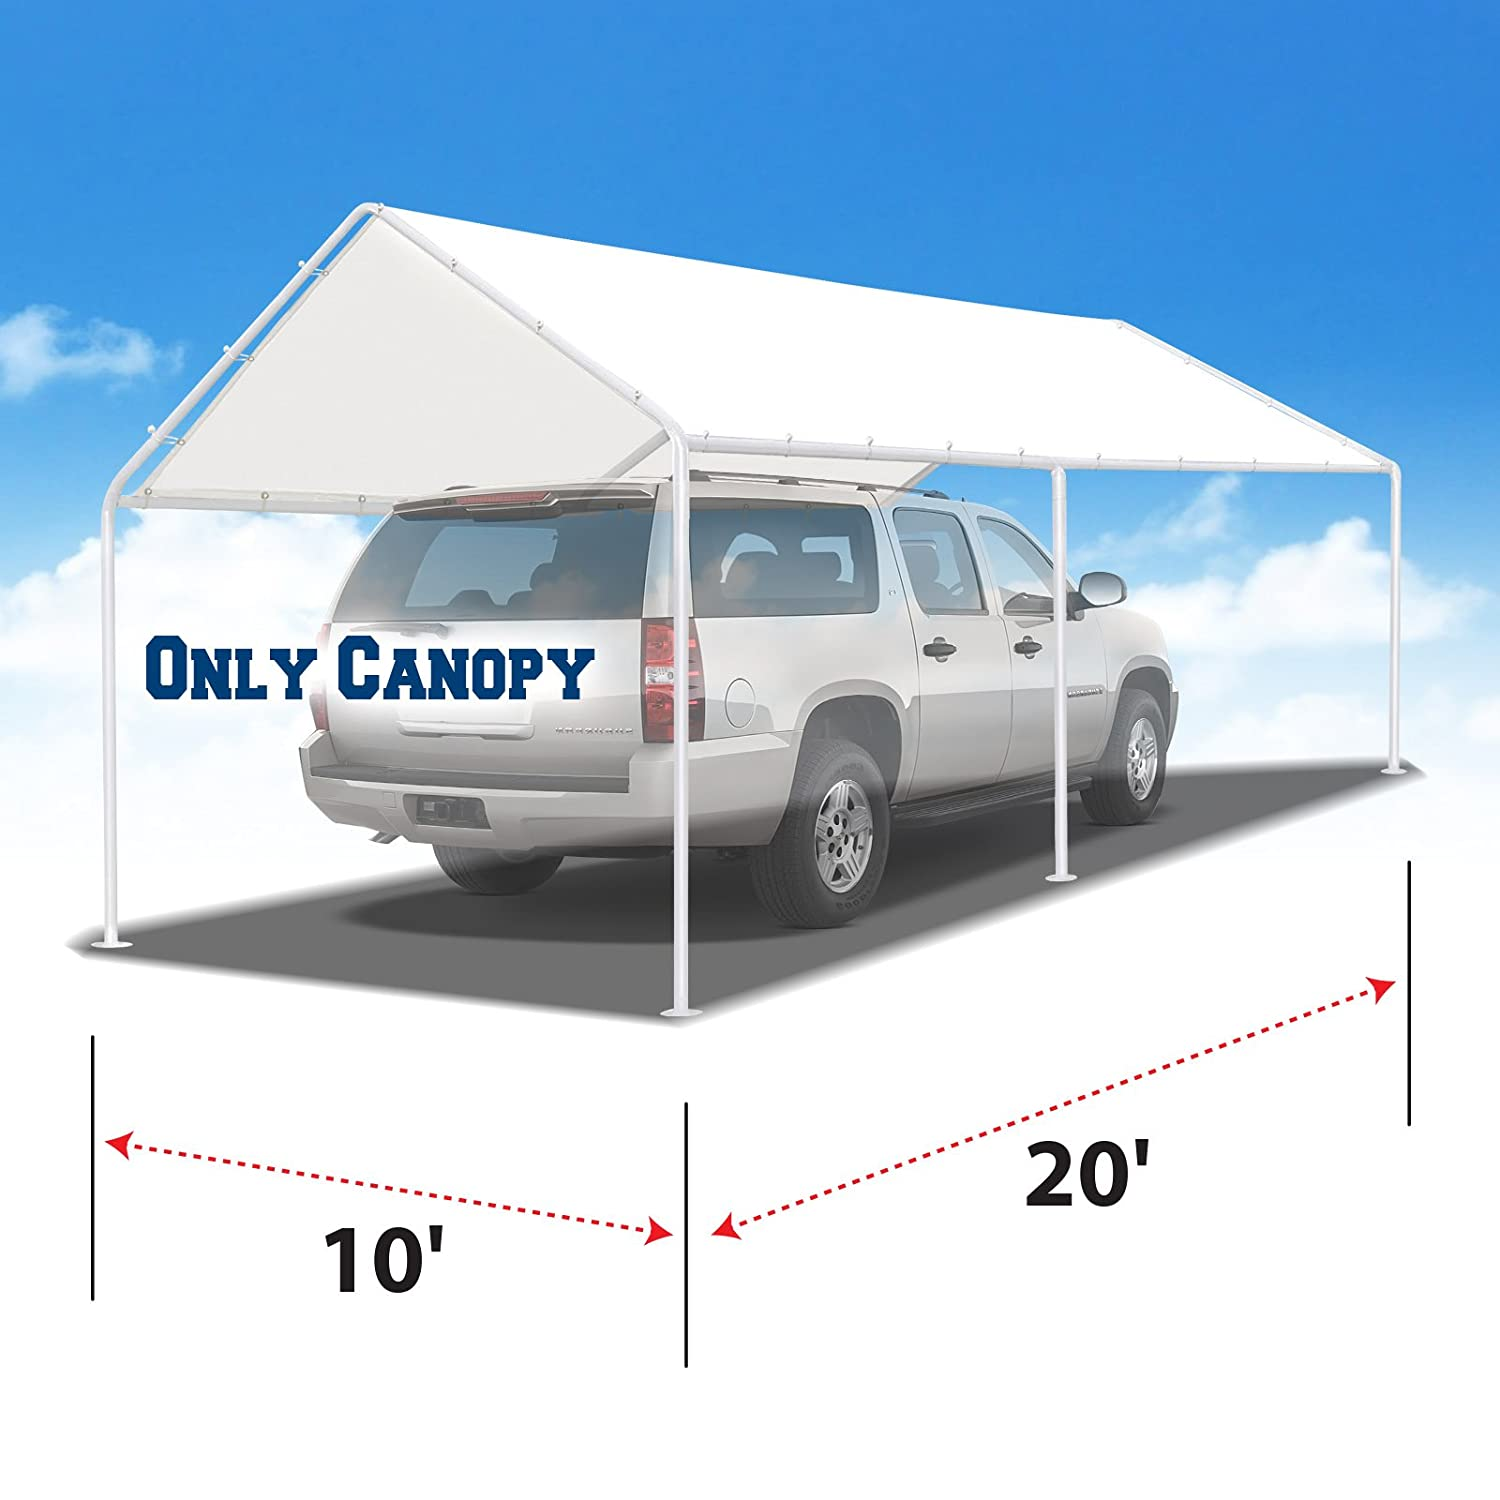 BenefitUSA 10'x20' Carport Replacement Canopy Garage Top Tarp Shelter Cover w Ball Bungees (Cover Only) (with Edge) CG